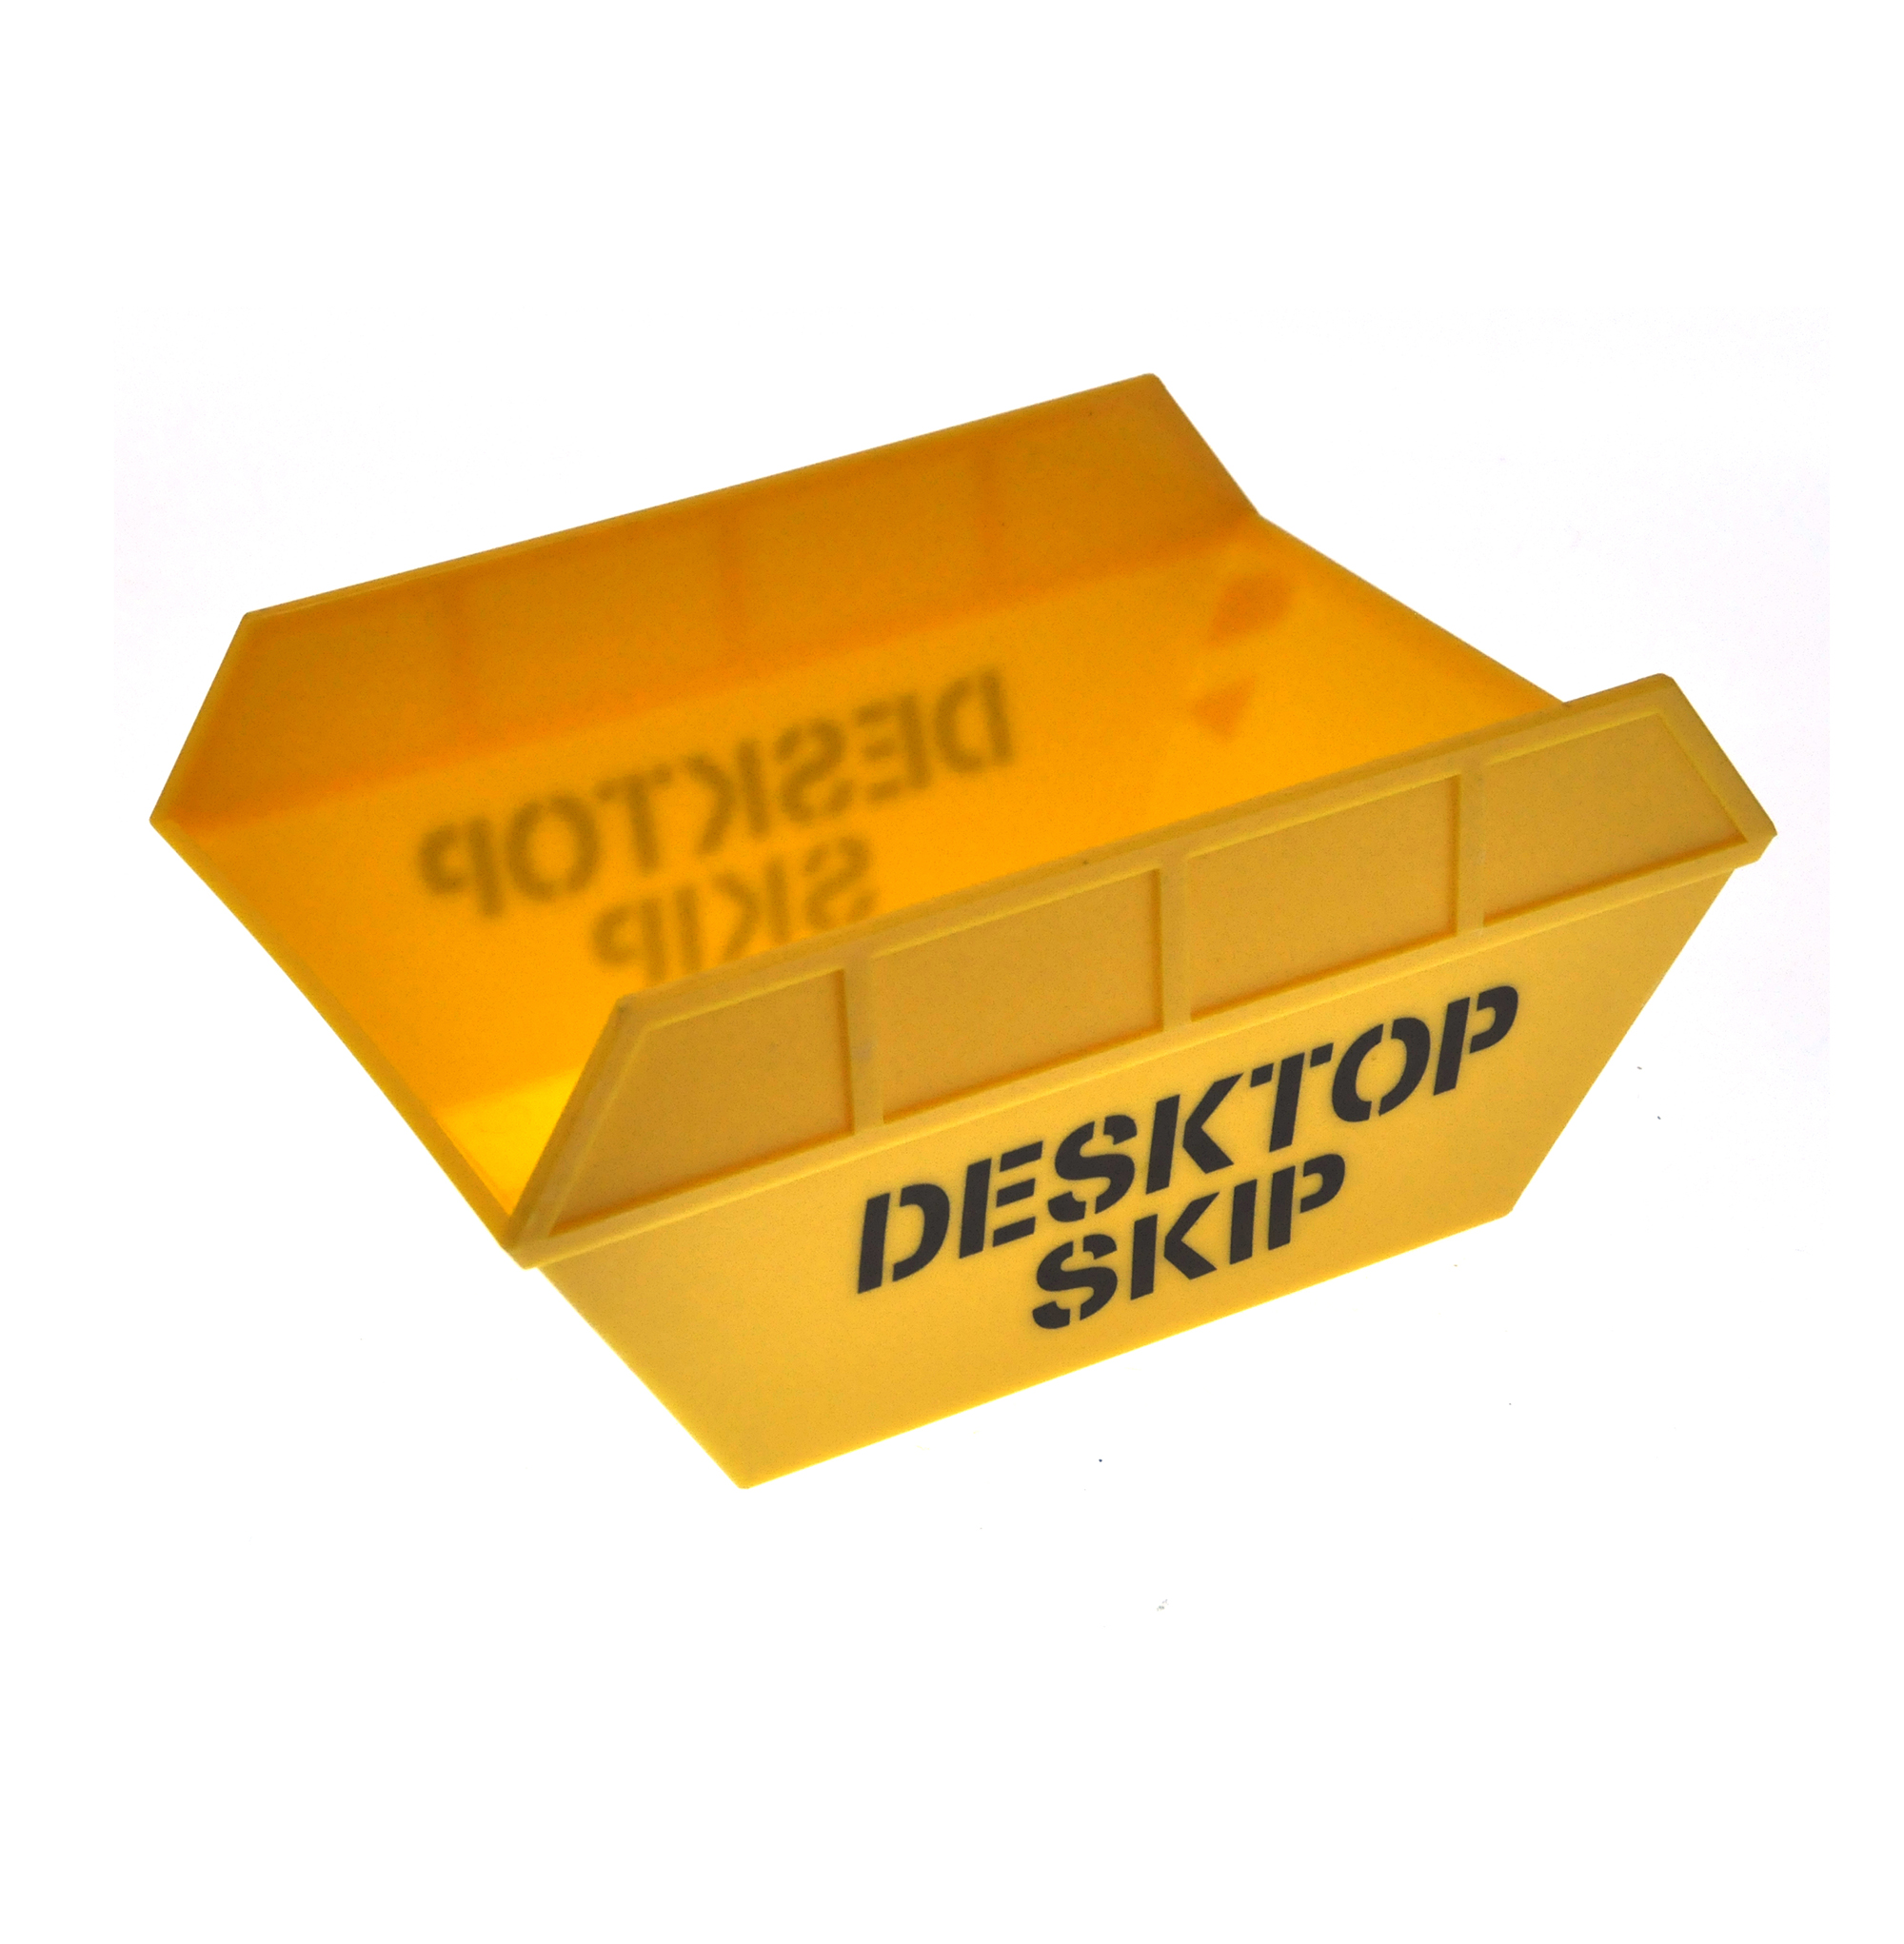 Desk Top Skip  Pink Cat Shop. Treadmill Under Desk. King Bed With Drawers Underneath. Table Cards. Desk With Storage Shelves. Ipad Lap Desk. Led Table Lamp. How To Raise Your Desk. Schneider Electric Help Desk